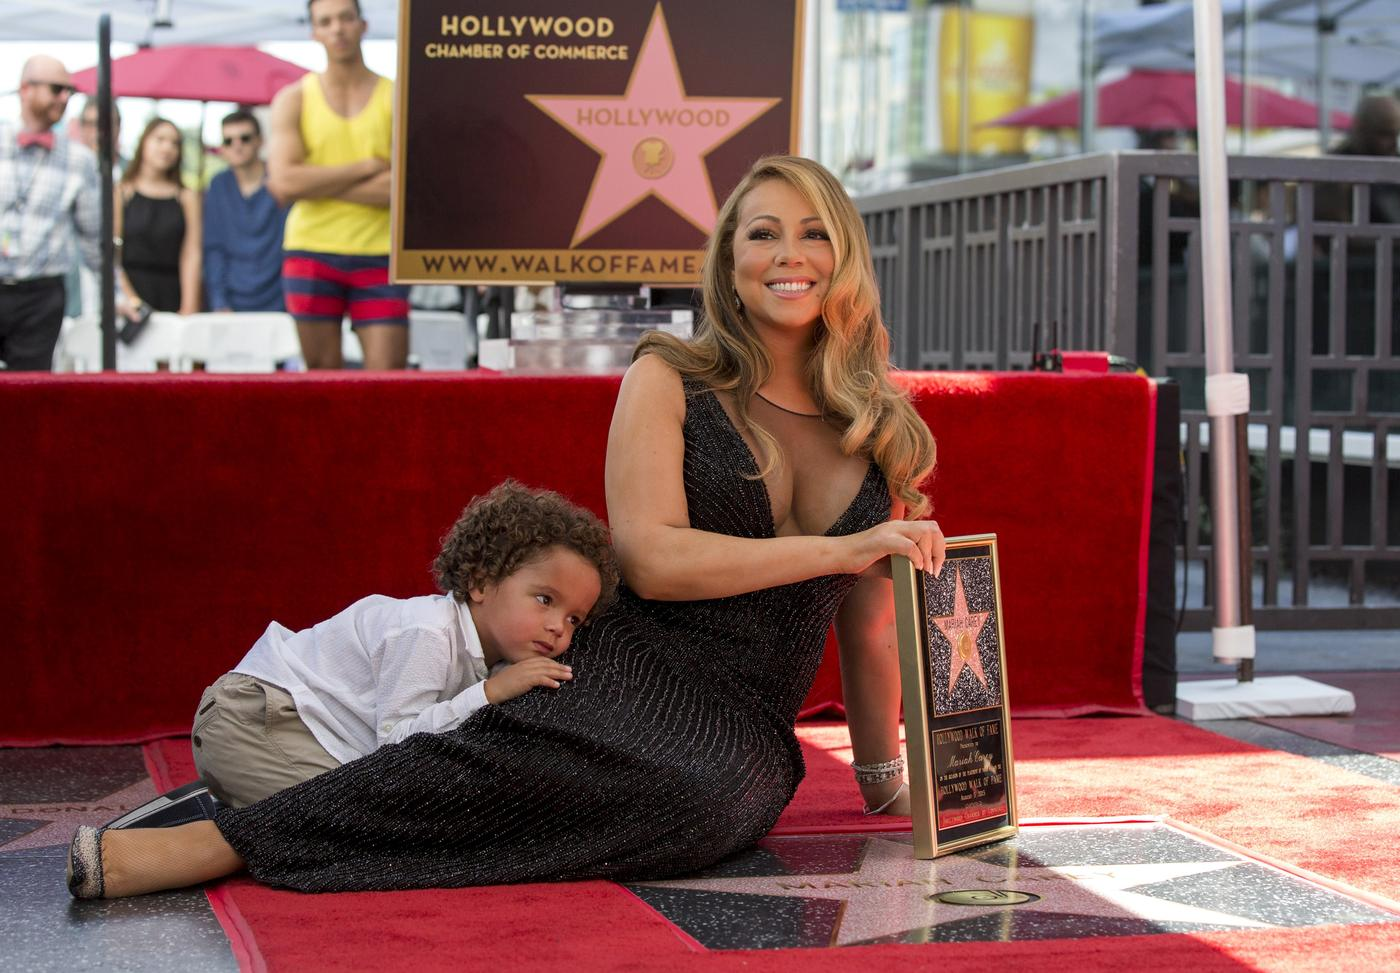 WATCH: No one shares the spotlight with Mariah Carey – not even her son Moroccan